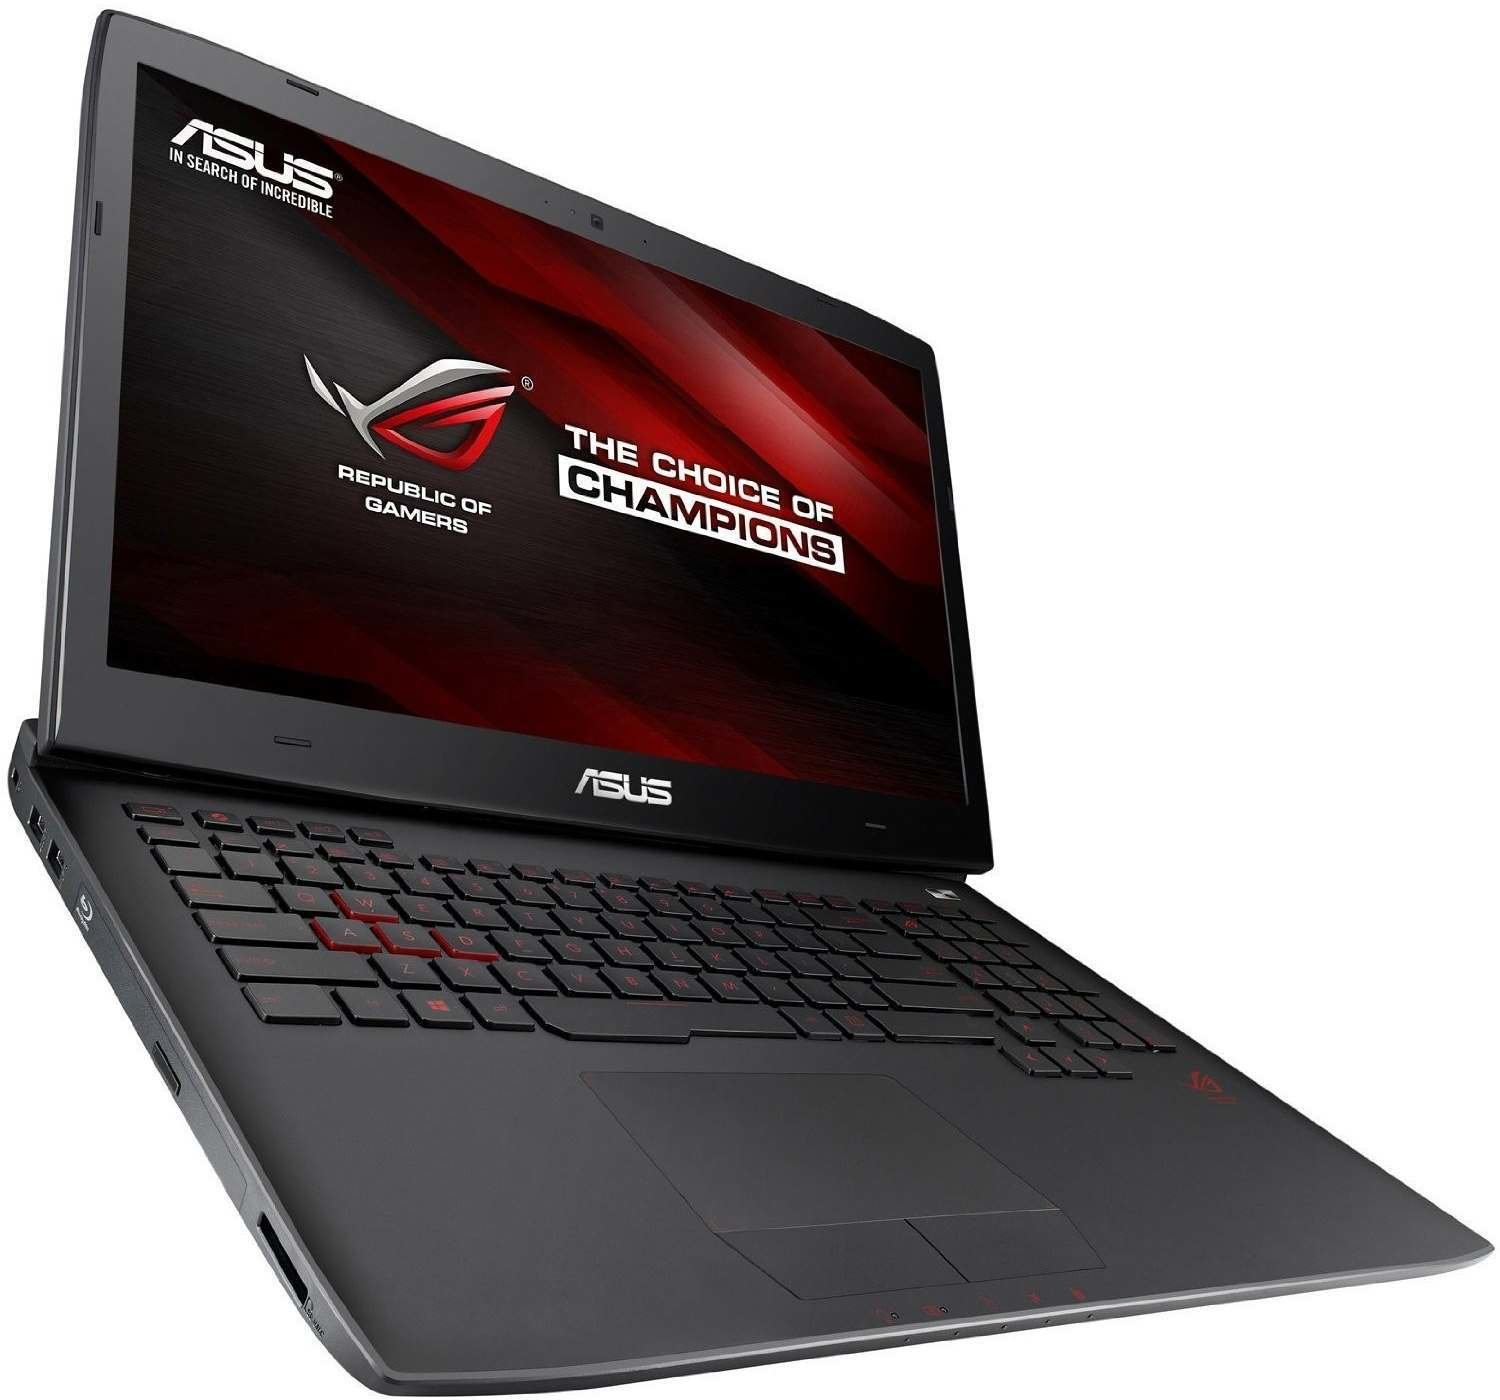 asus rog g751jt t7095h test gaming notebook. Black Bedroom Furniture Sets. Home Design Ideas